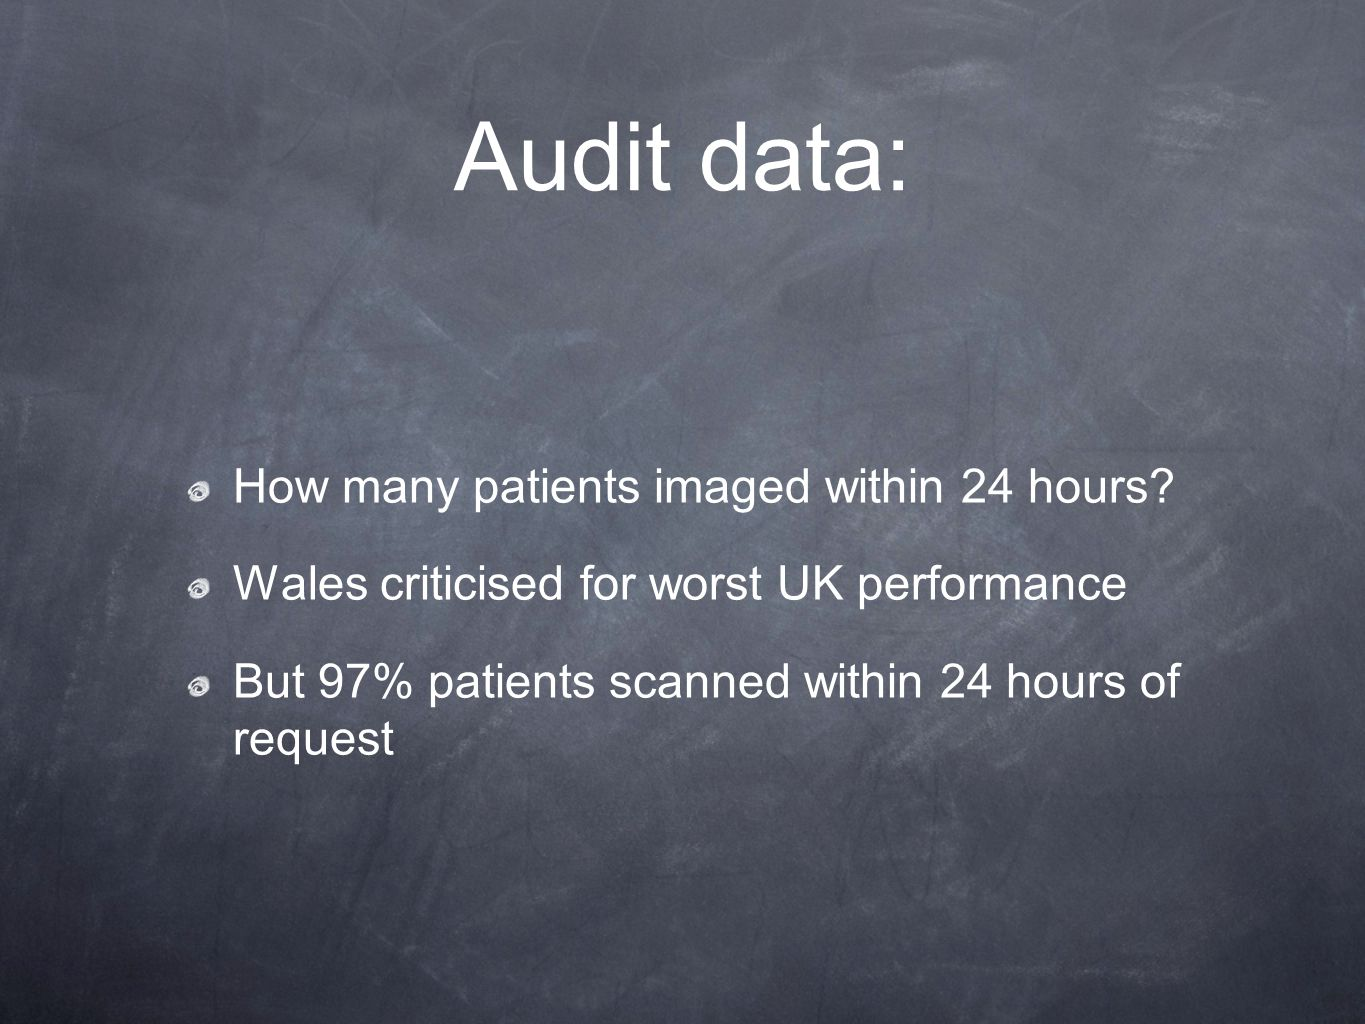 Audit data: How many patients imaged within 24 hours.